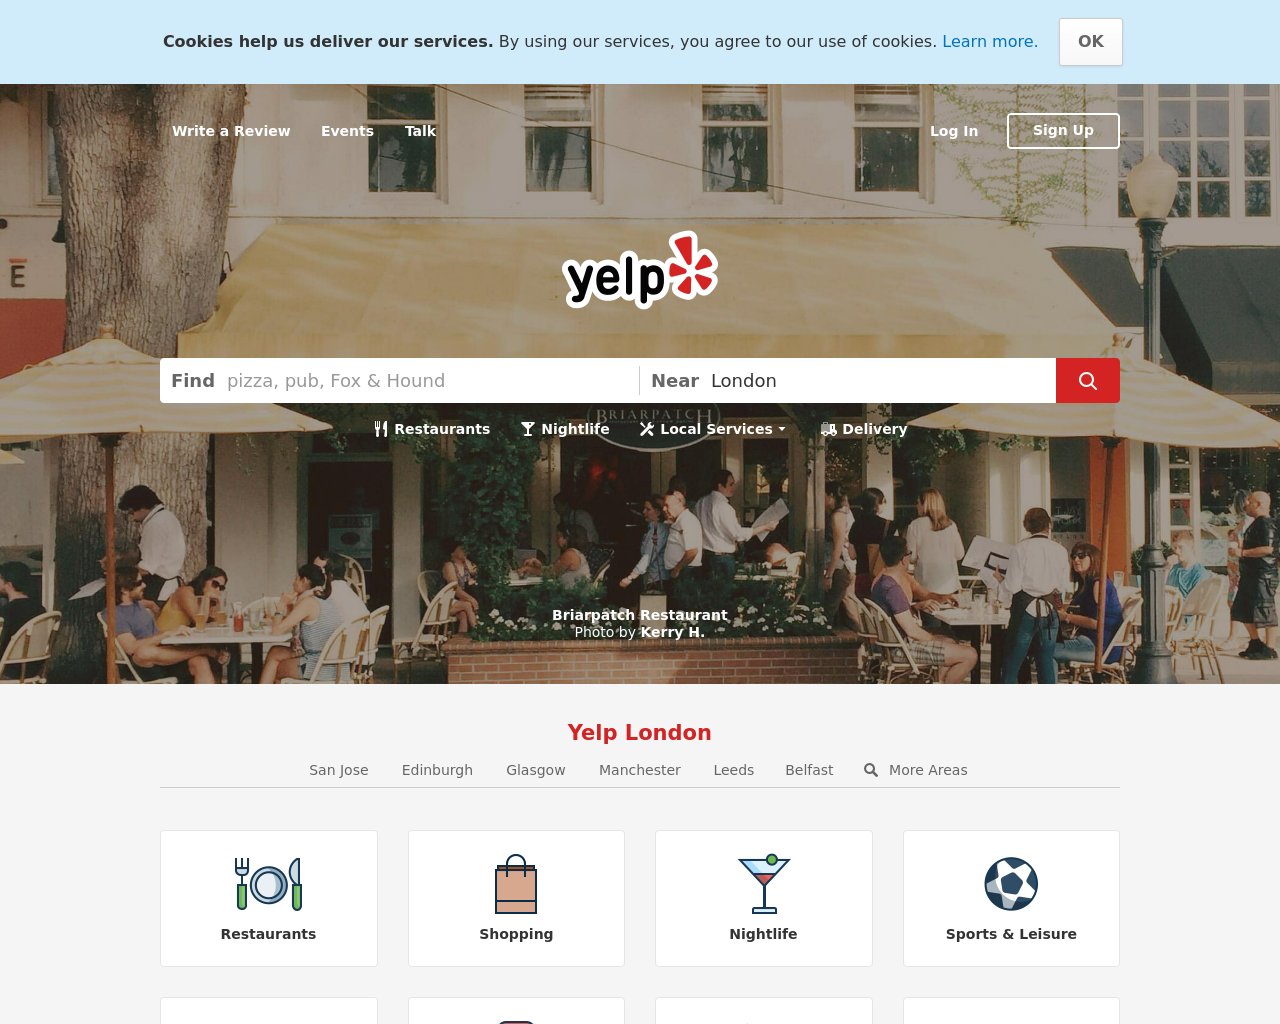 Yelp-Advertising-Reviews-Pricing